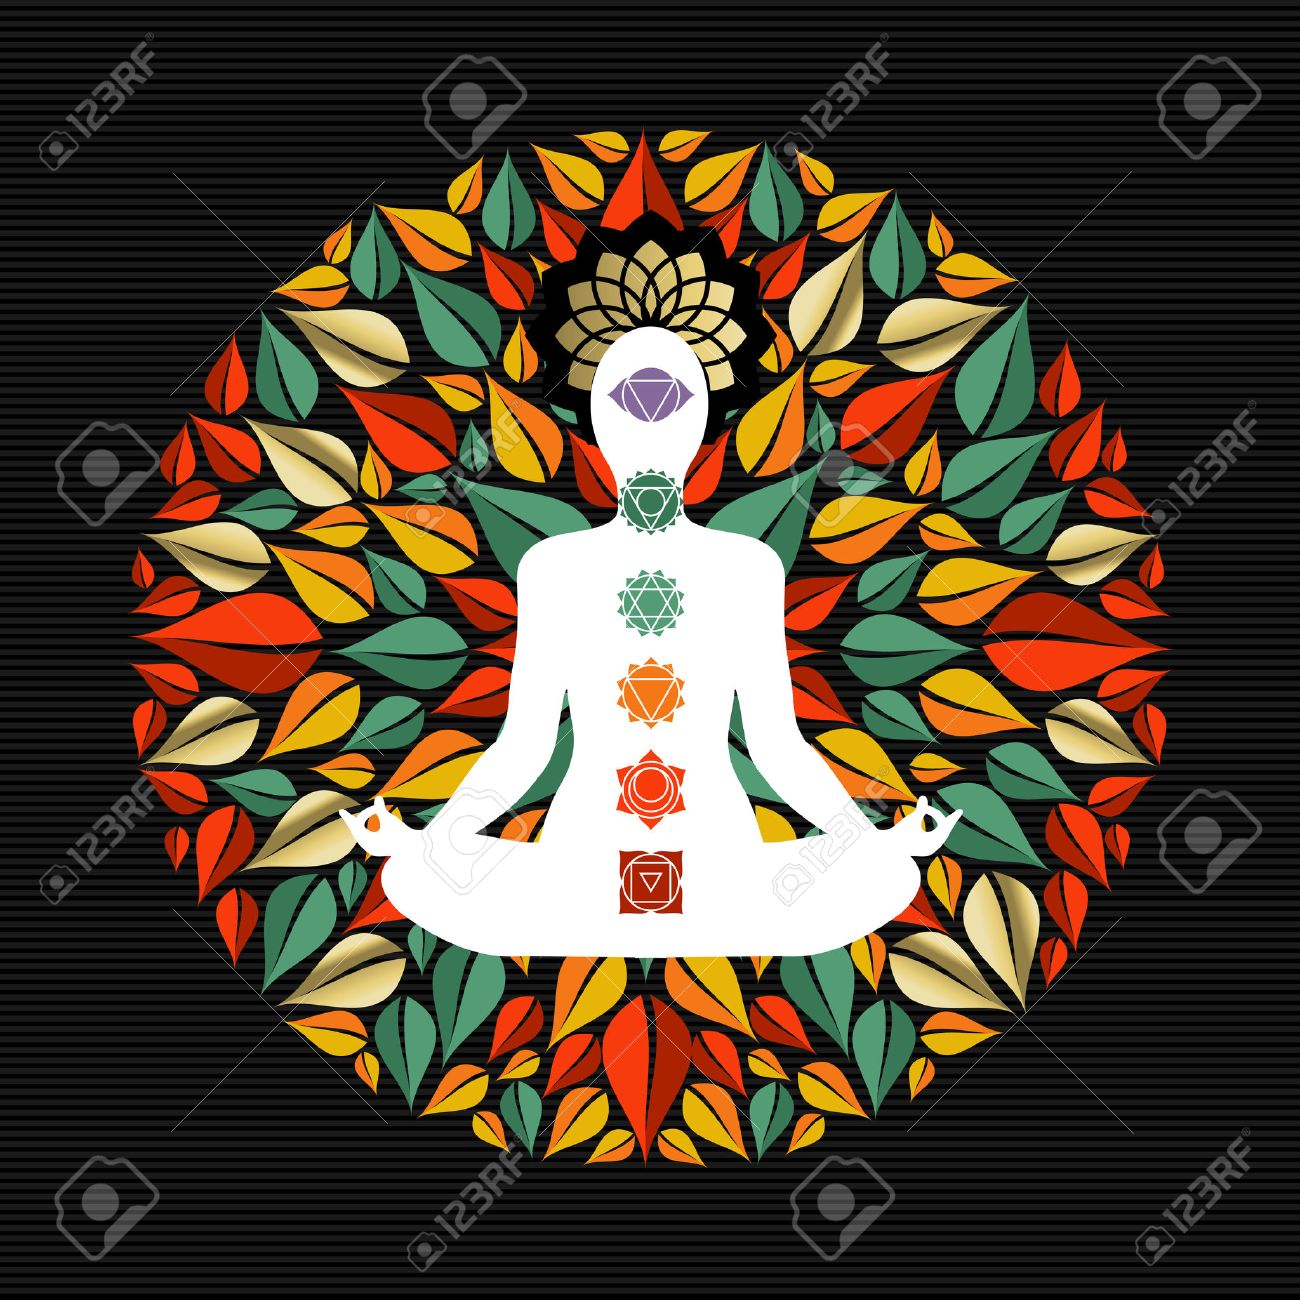 Mandala made of tree leaves with body silhouette doing yoga lotus pose and chakra icons. - 52426583